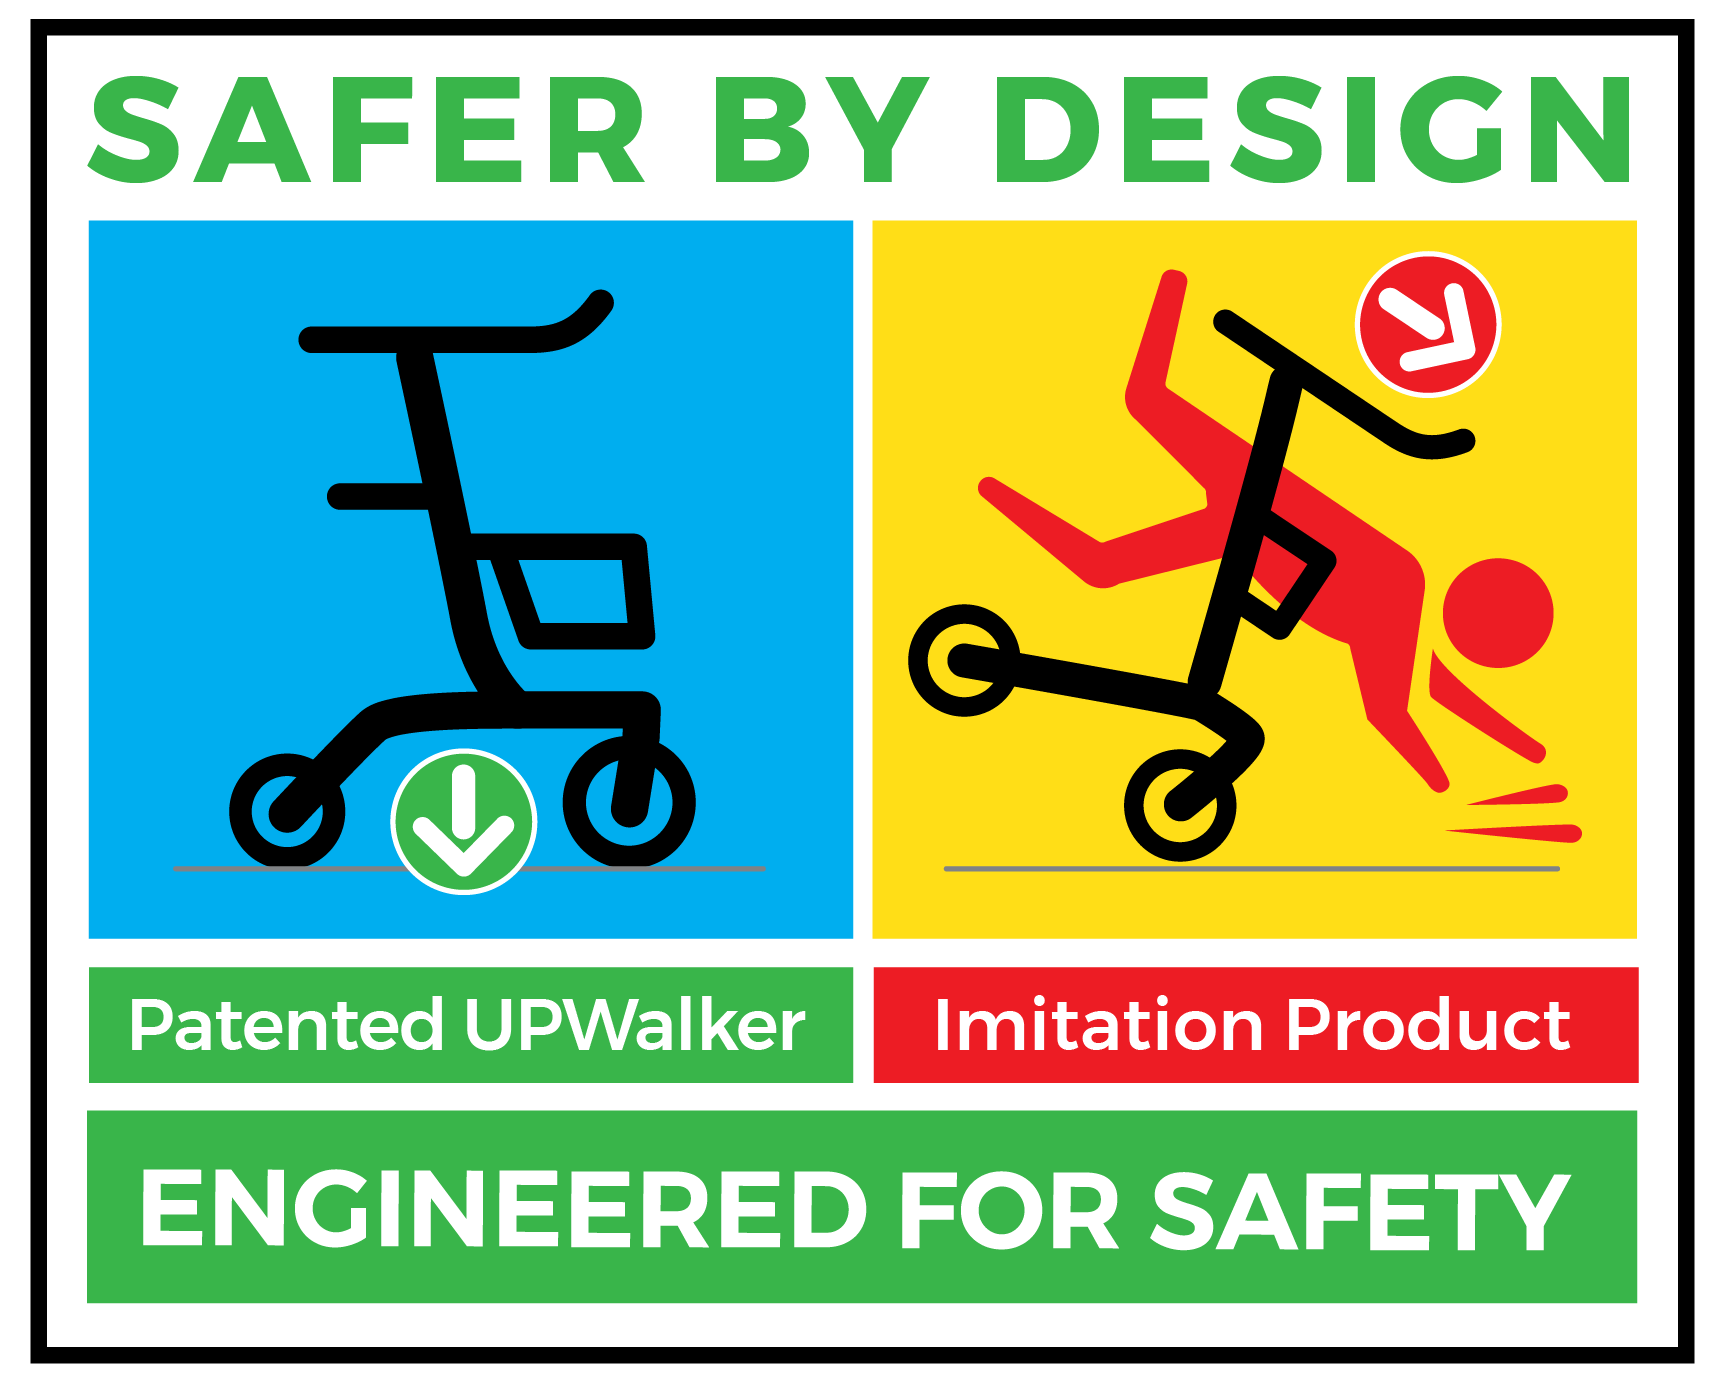 A safety sticker demonstrating how the UPWalker is engineered to be more stable compared to competing upright walker models.